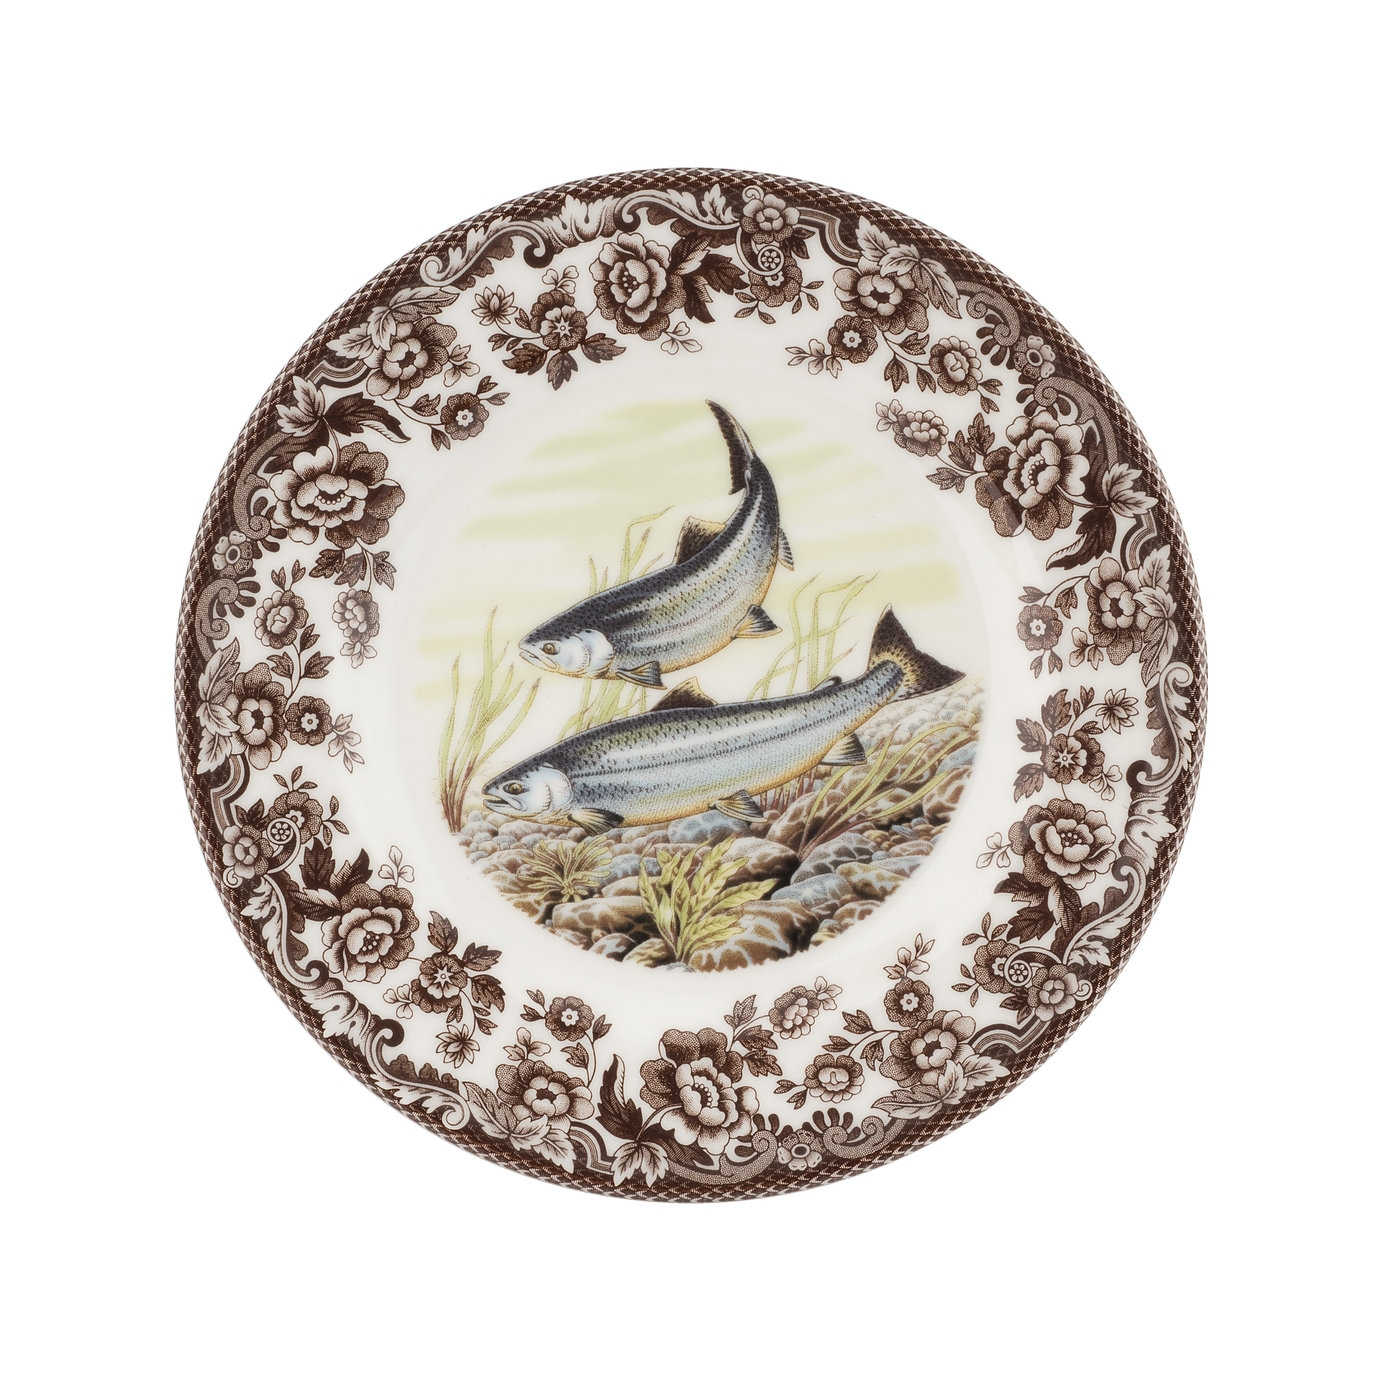 Spode Woodland Salad Plate 8 Inch (King Salmon)  image number 0